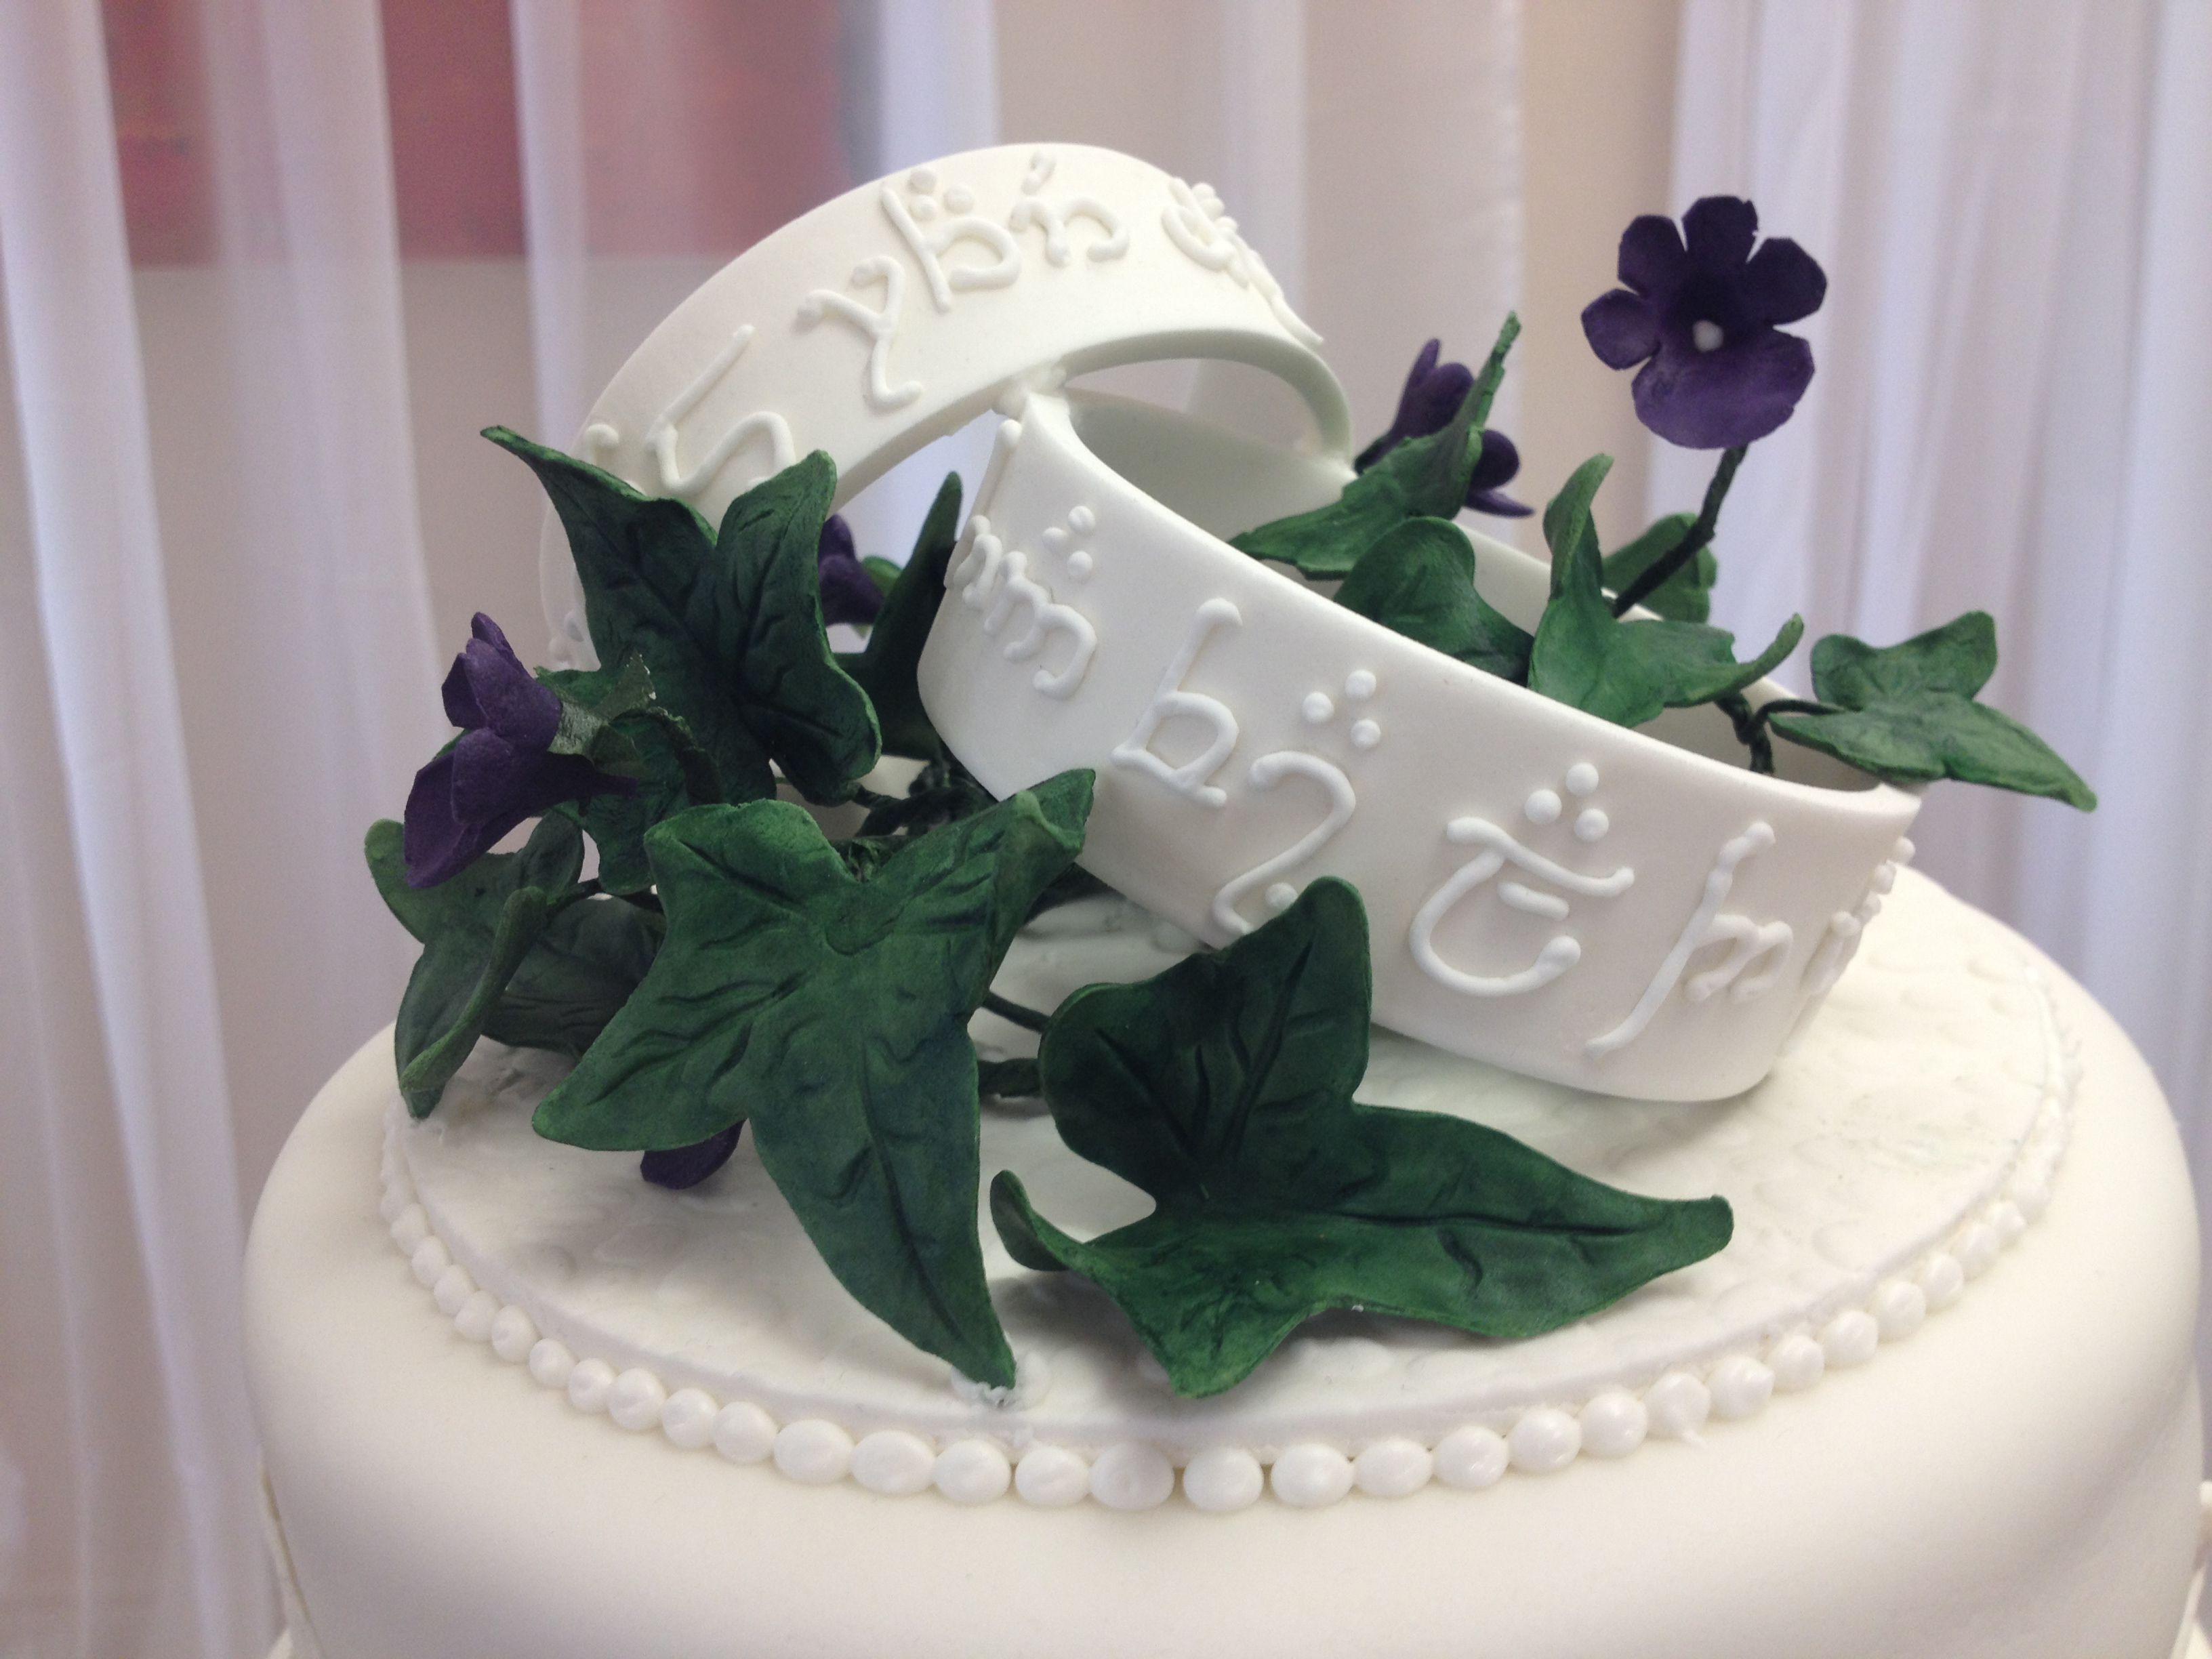 wedding ring cake topper Lord of the Rings inspired wedding cake topper made from pastillage The Rings are embellished